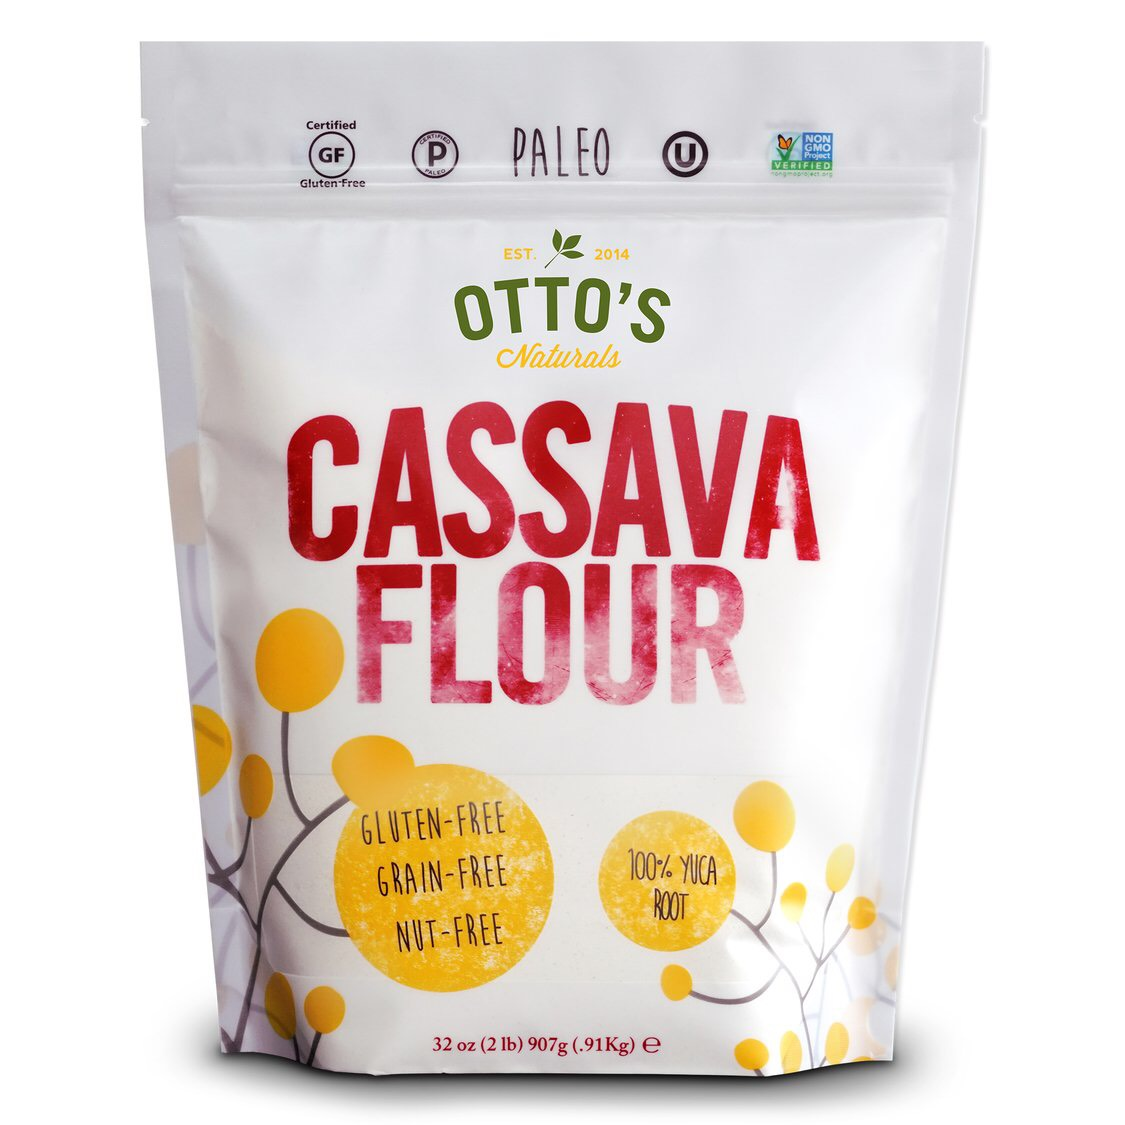 Otto's Cassava Flour - Certified Paleo by the Paleo Foundation